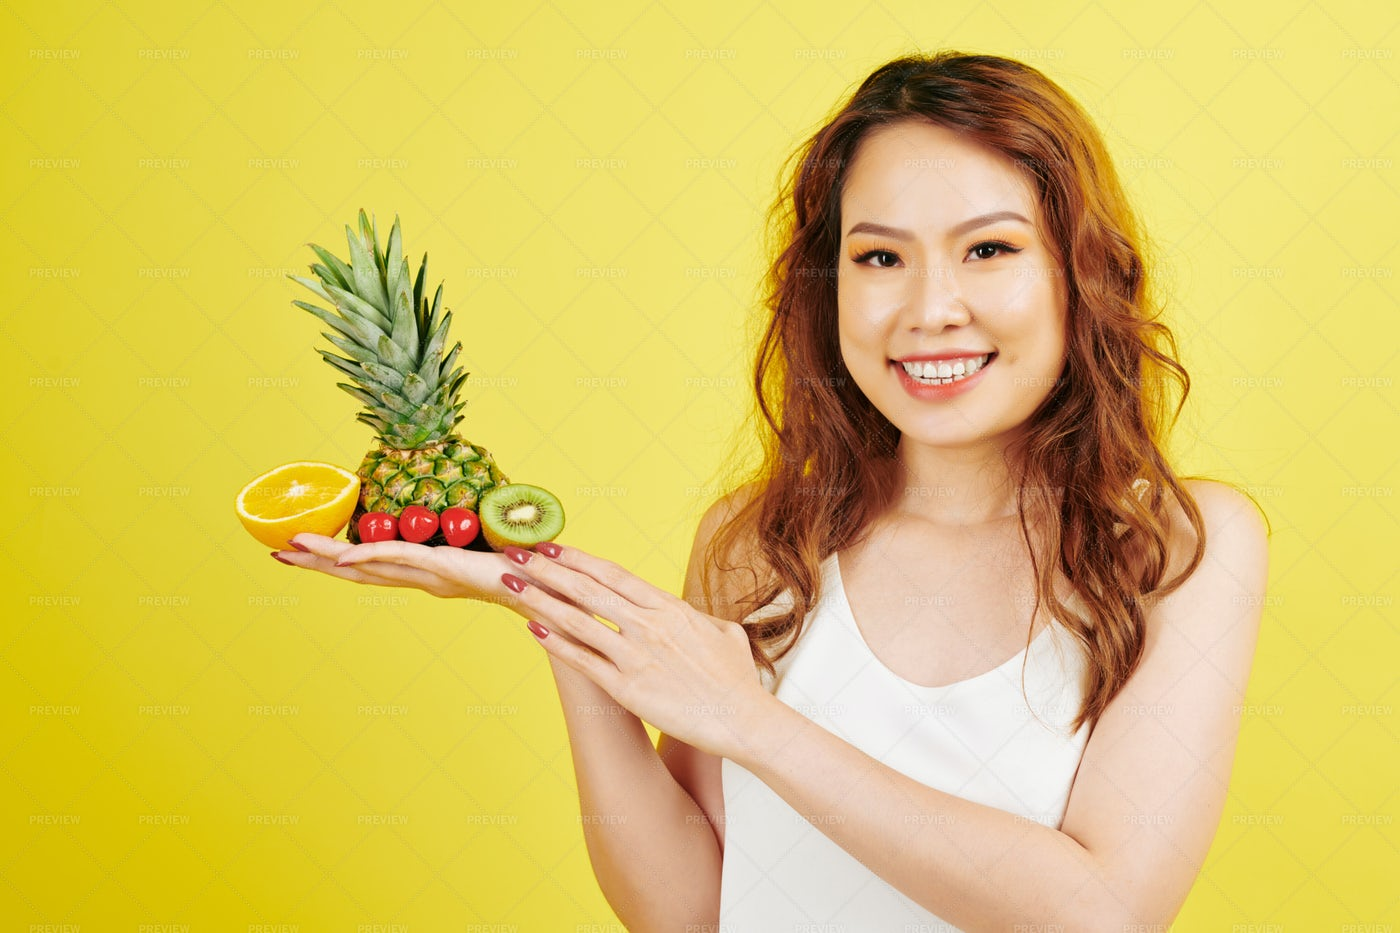 Woman With Tropical Fruits: Stock Photos